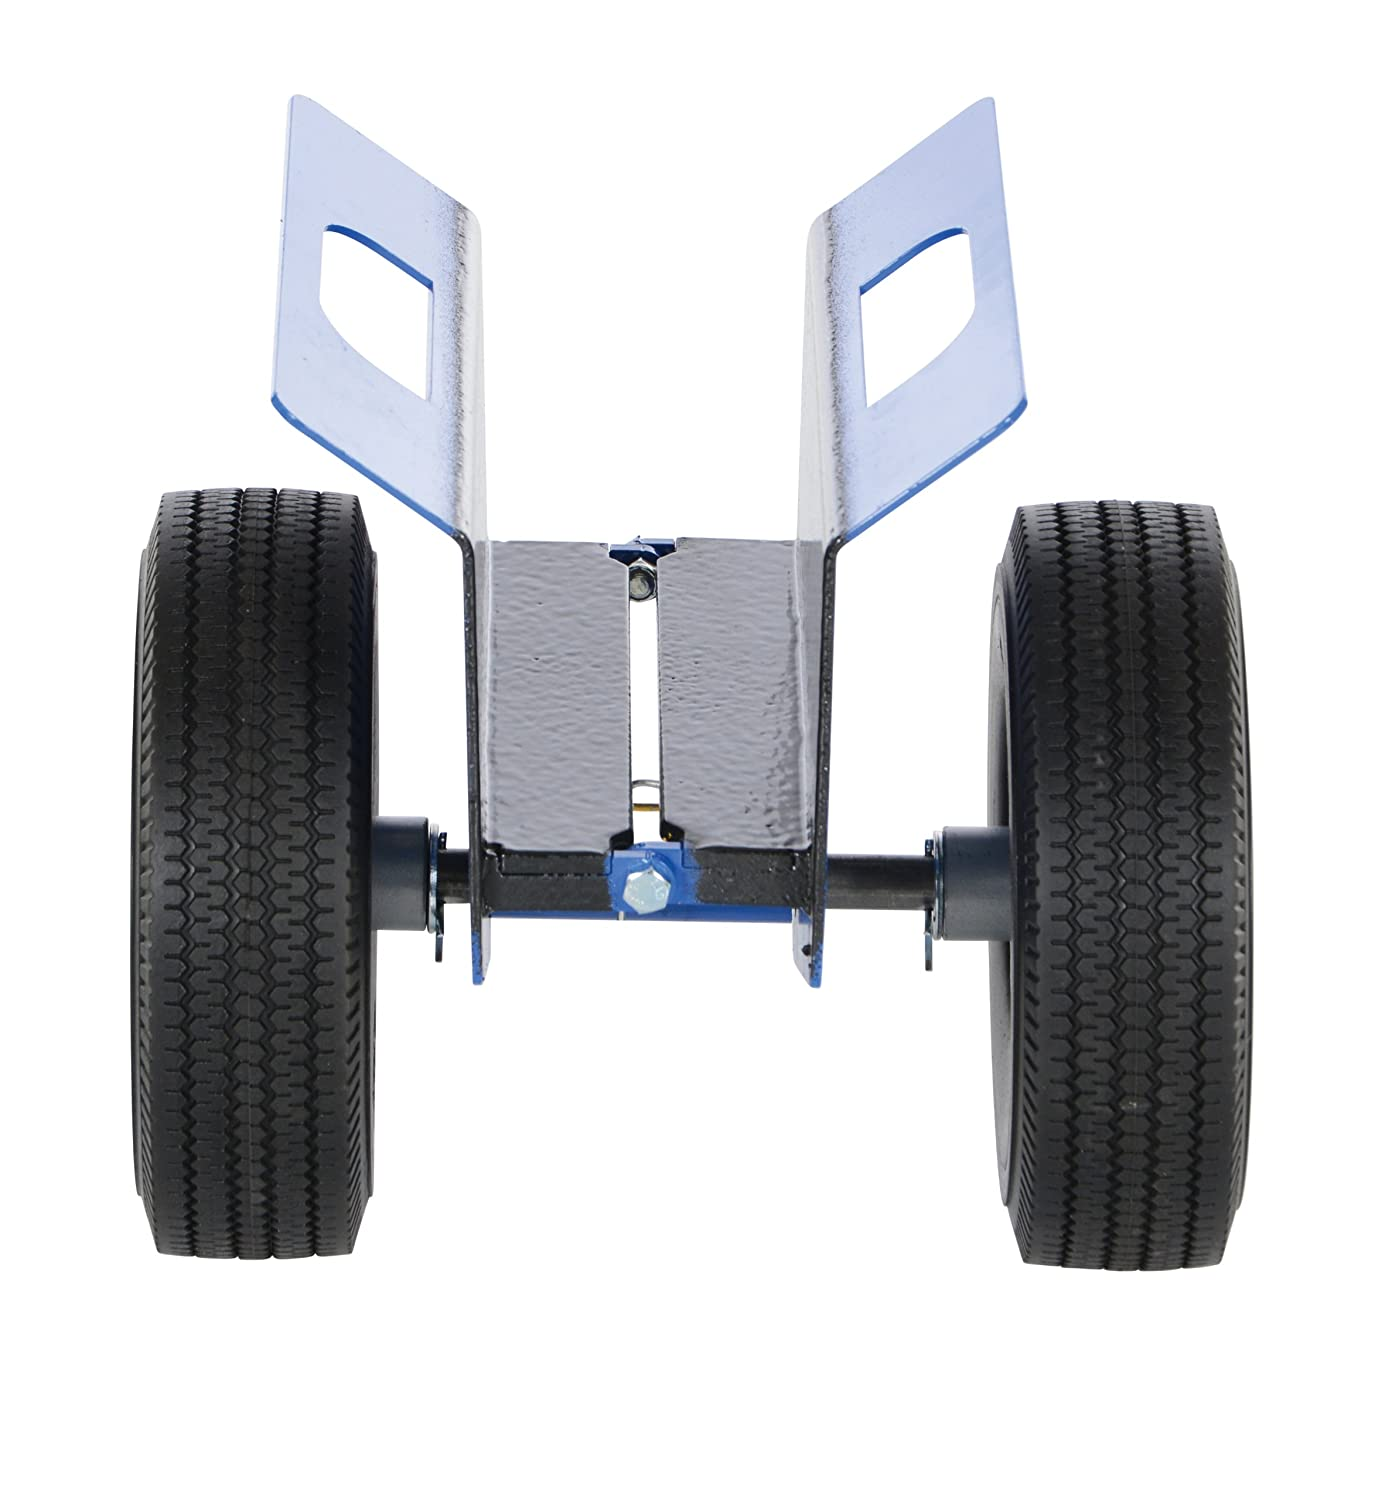 14-1//4 Height Vestil PLDL-HD-4 Steel Plate and Slab Dolly with Pneumatic Wheels 12 Length x 13 Width 750 lbs Load Capacity